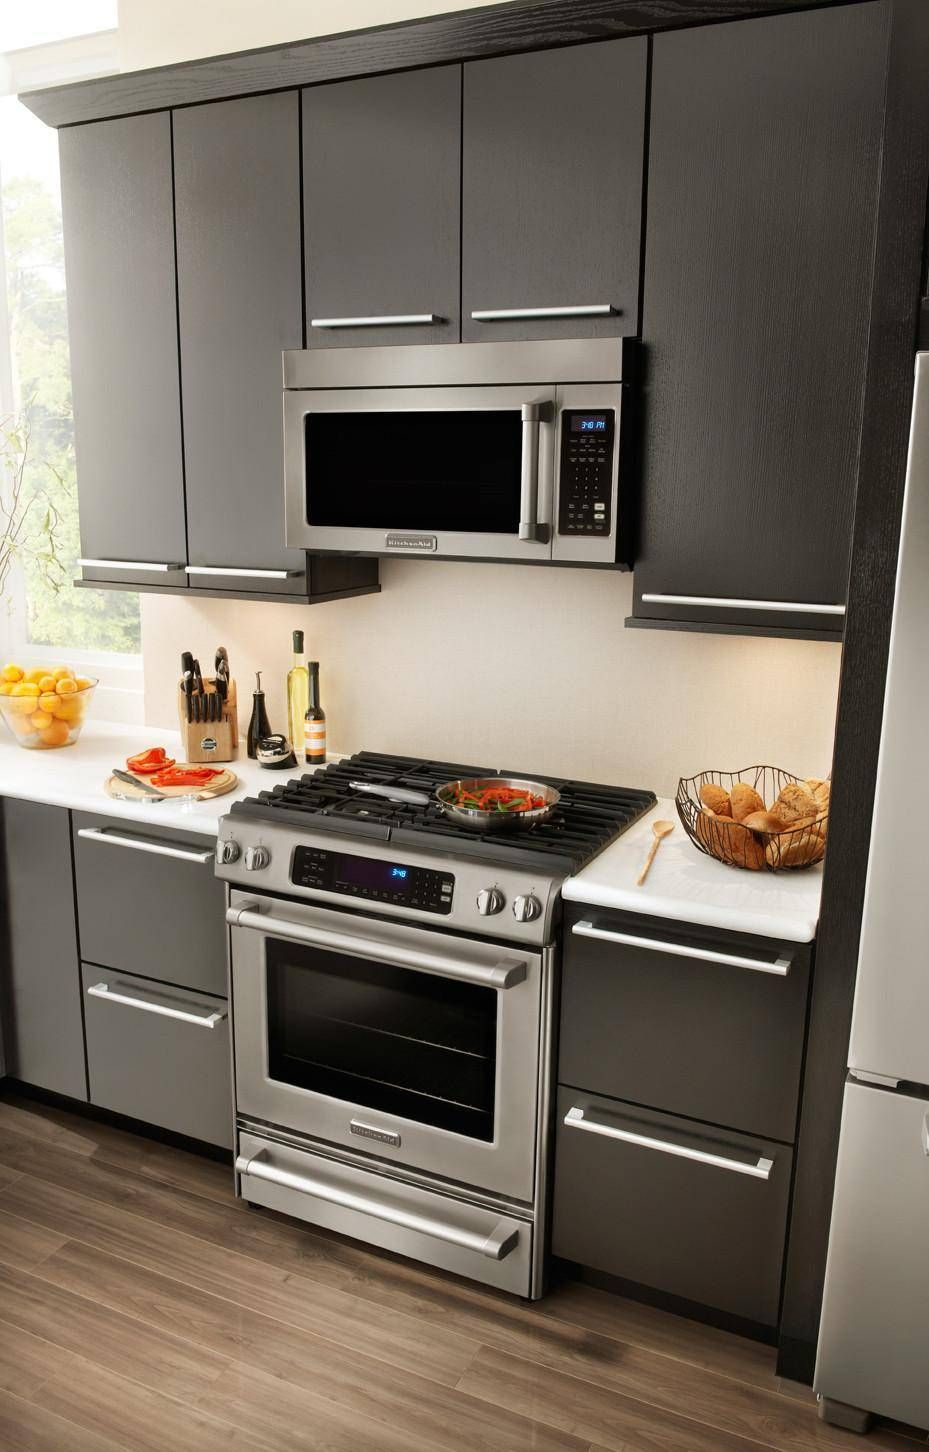 kikbblststco aid black steel kitchenaid package built stainless kitchen appliances in complete